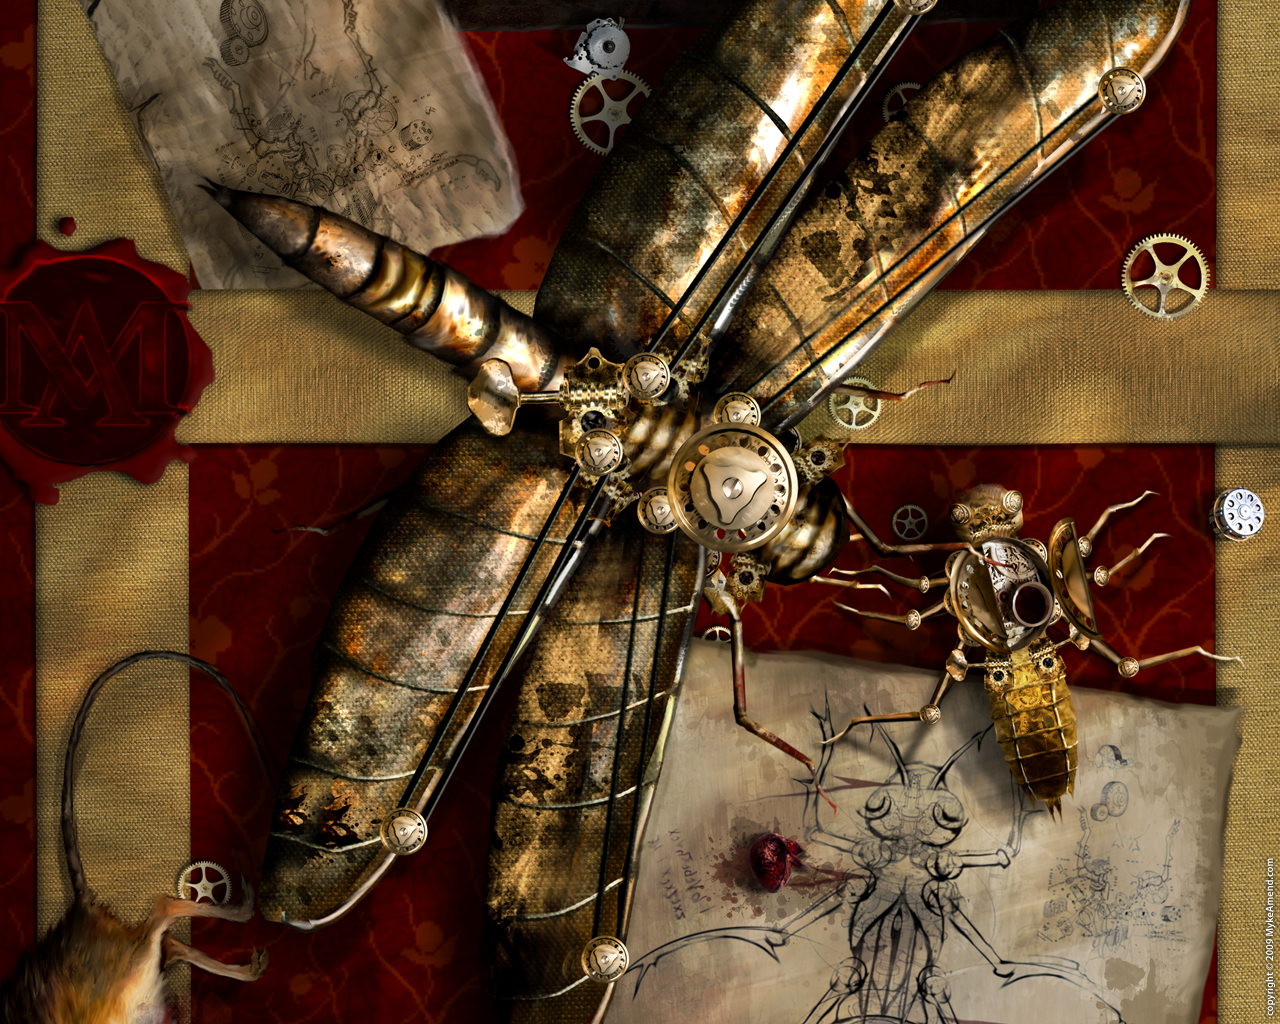 Steampunk Artwork Wallpaper Wallpapersafari